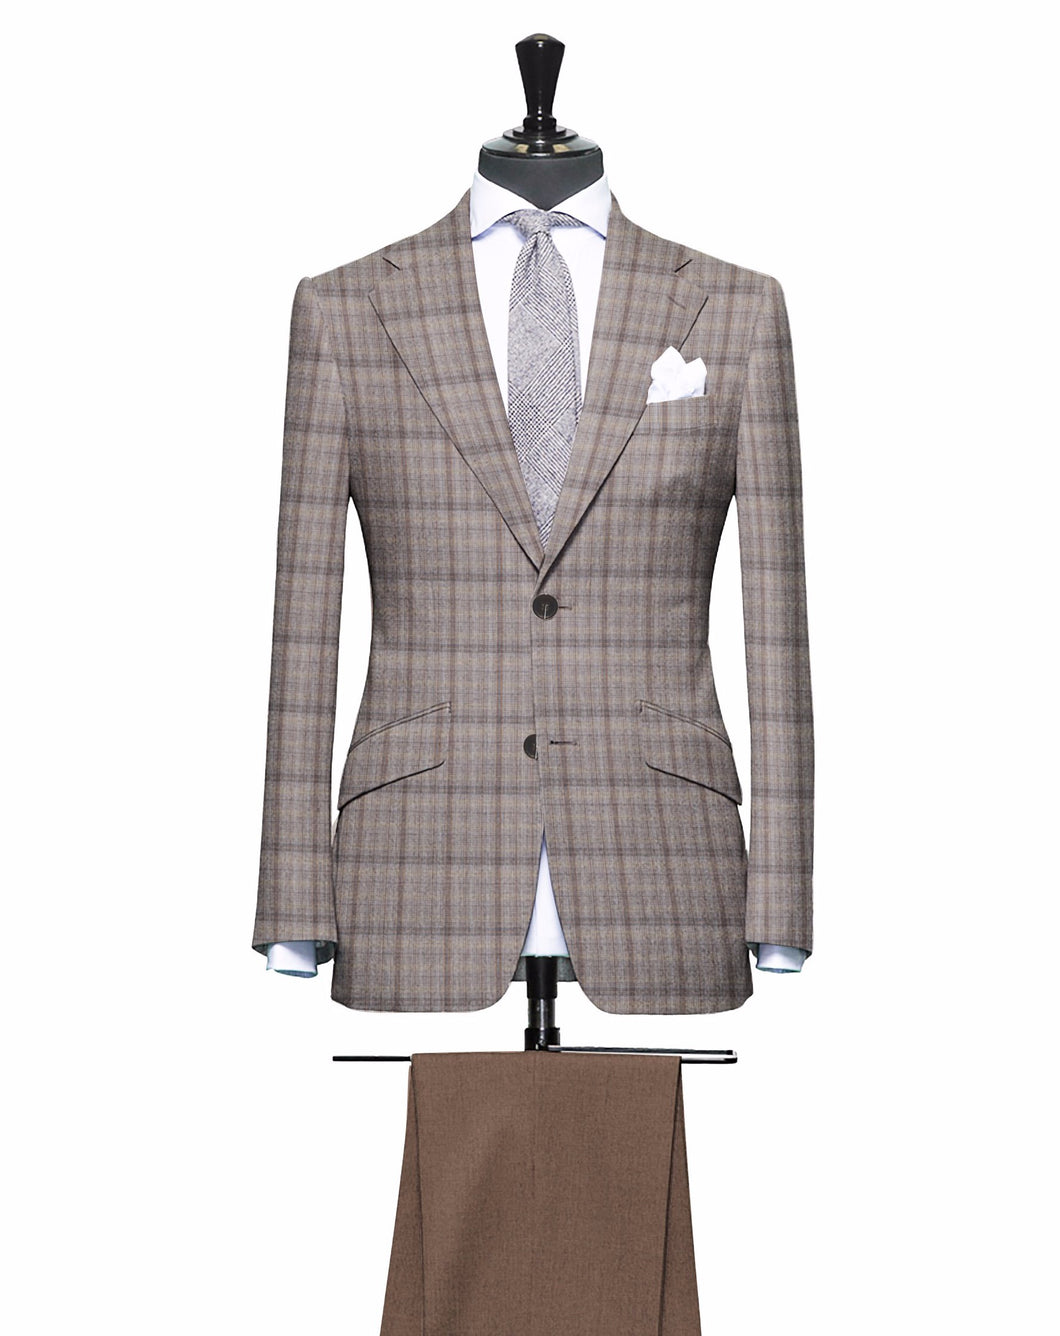 Shades of Brown Plaid Pattern with Matching Light Brown Pants, Super 150, Wool